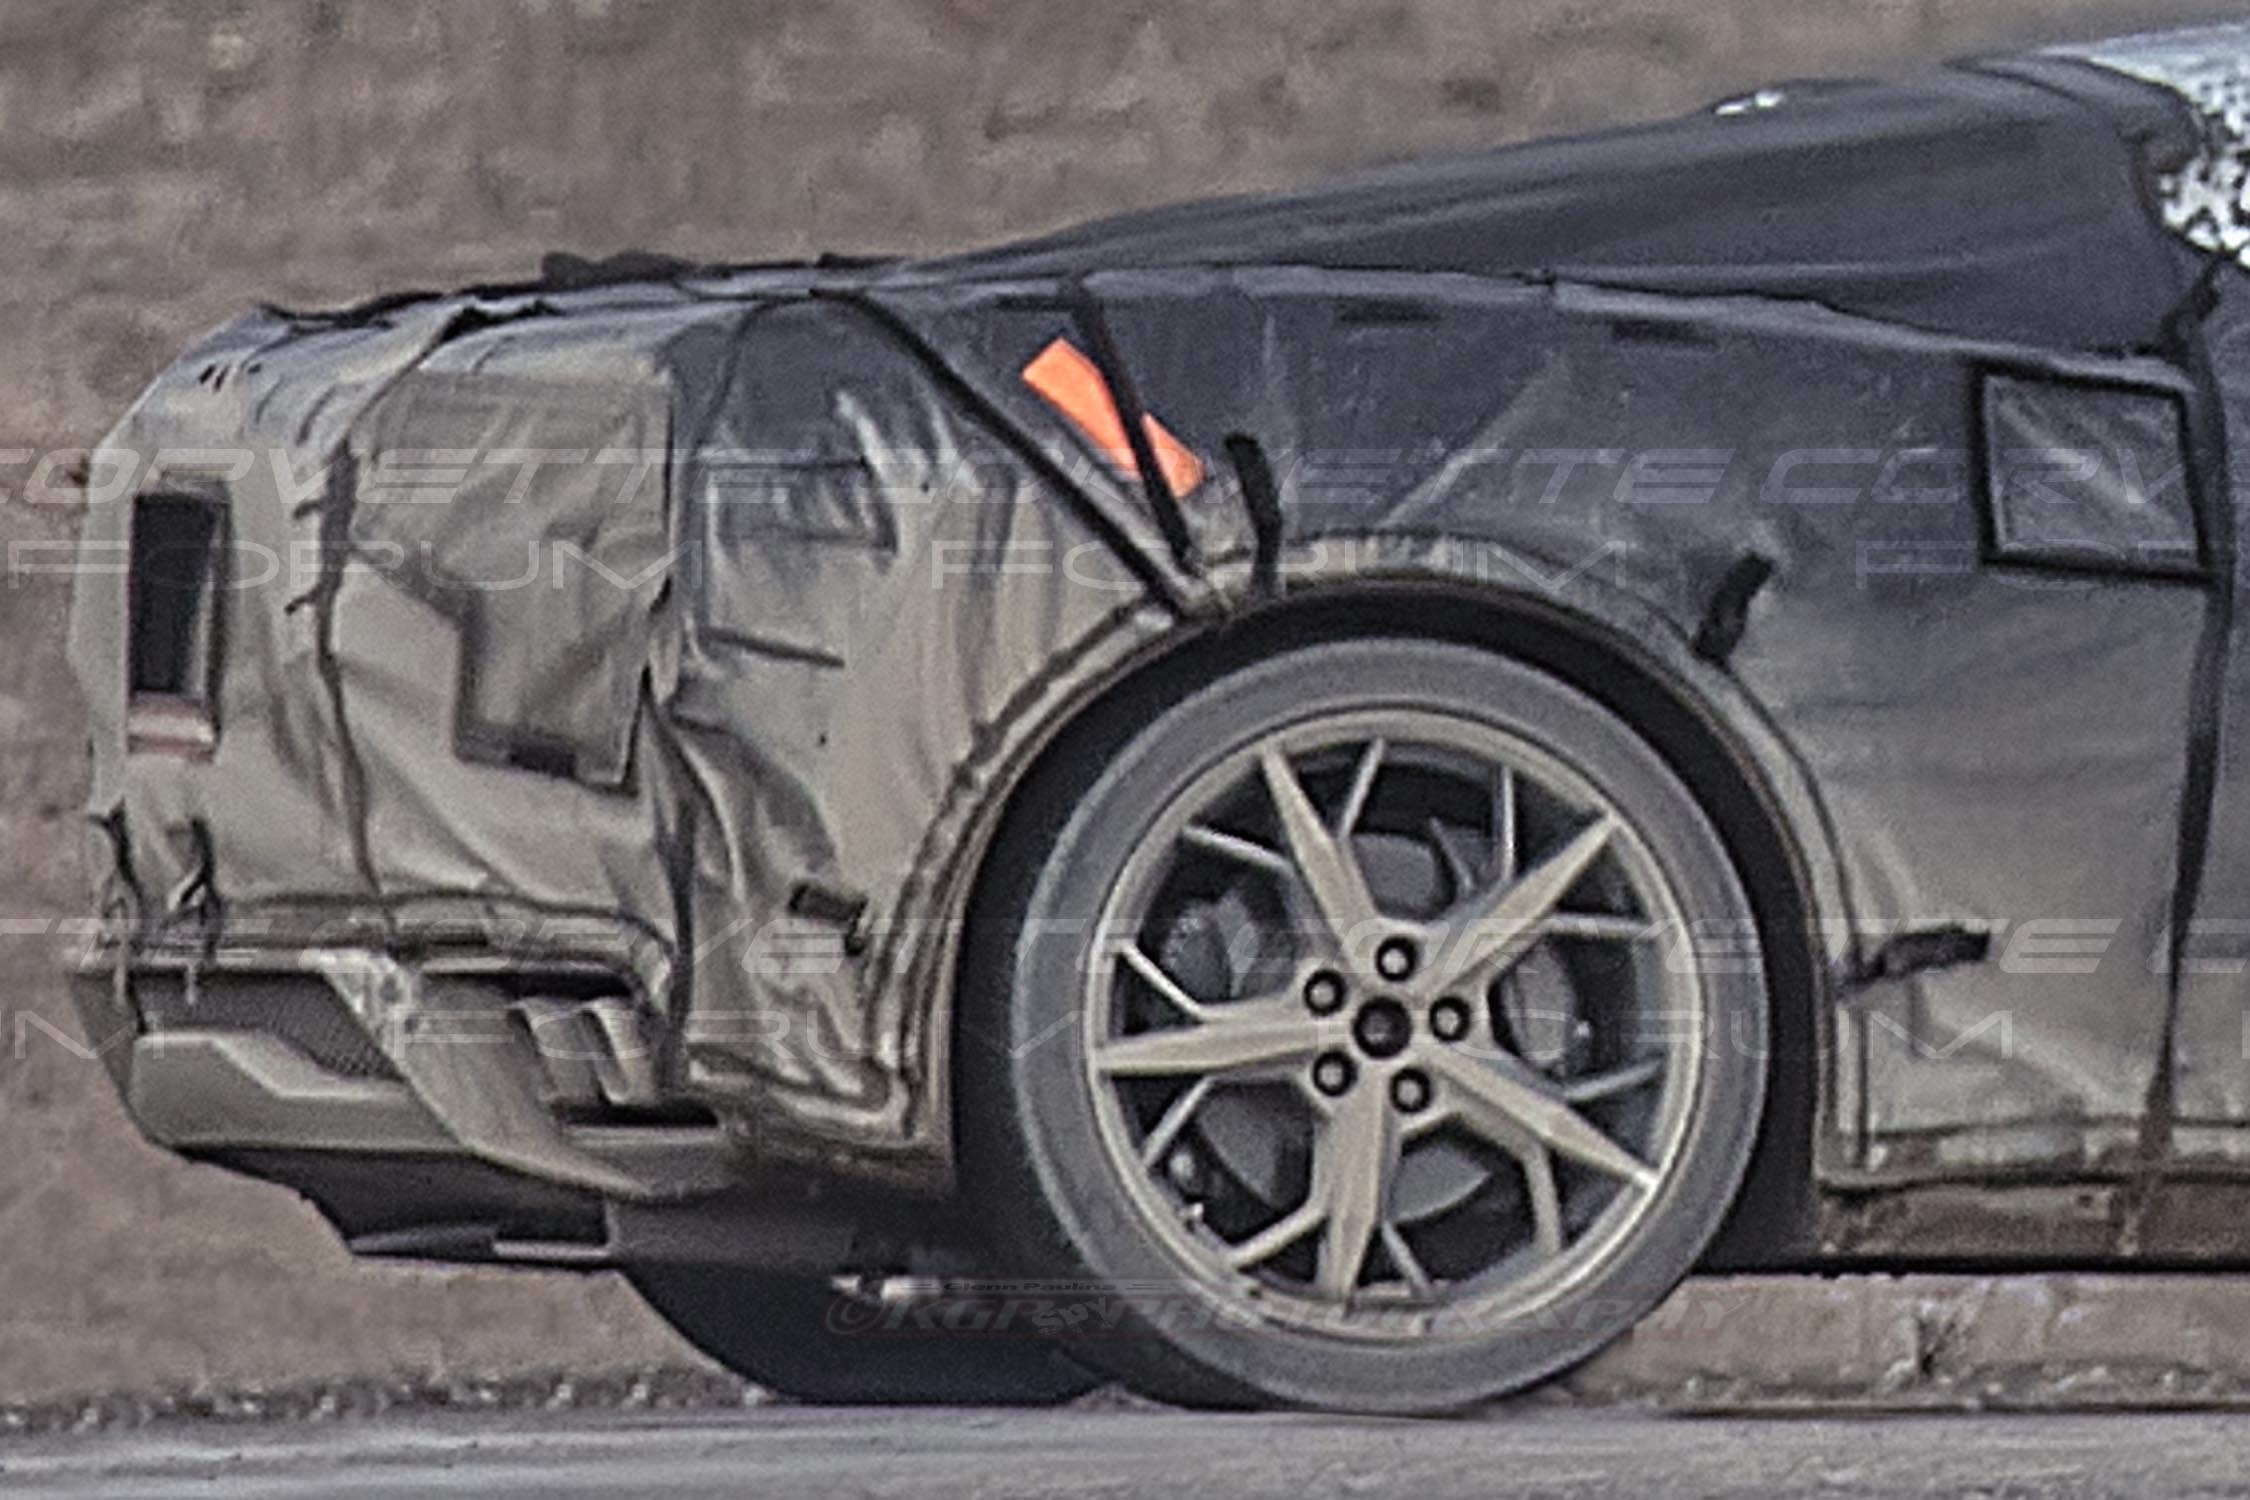 Corvetteforum.com Spy Shots Corvette C8 Zora Mid-Engine News Story Updates